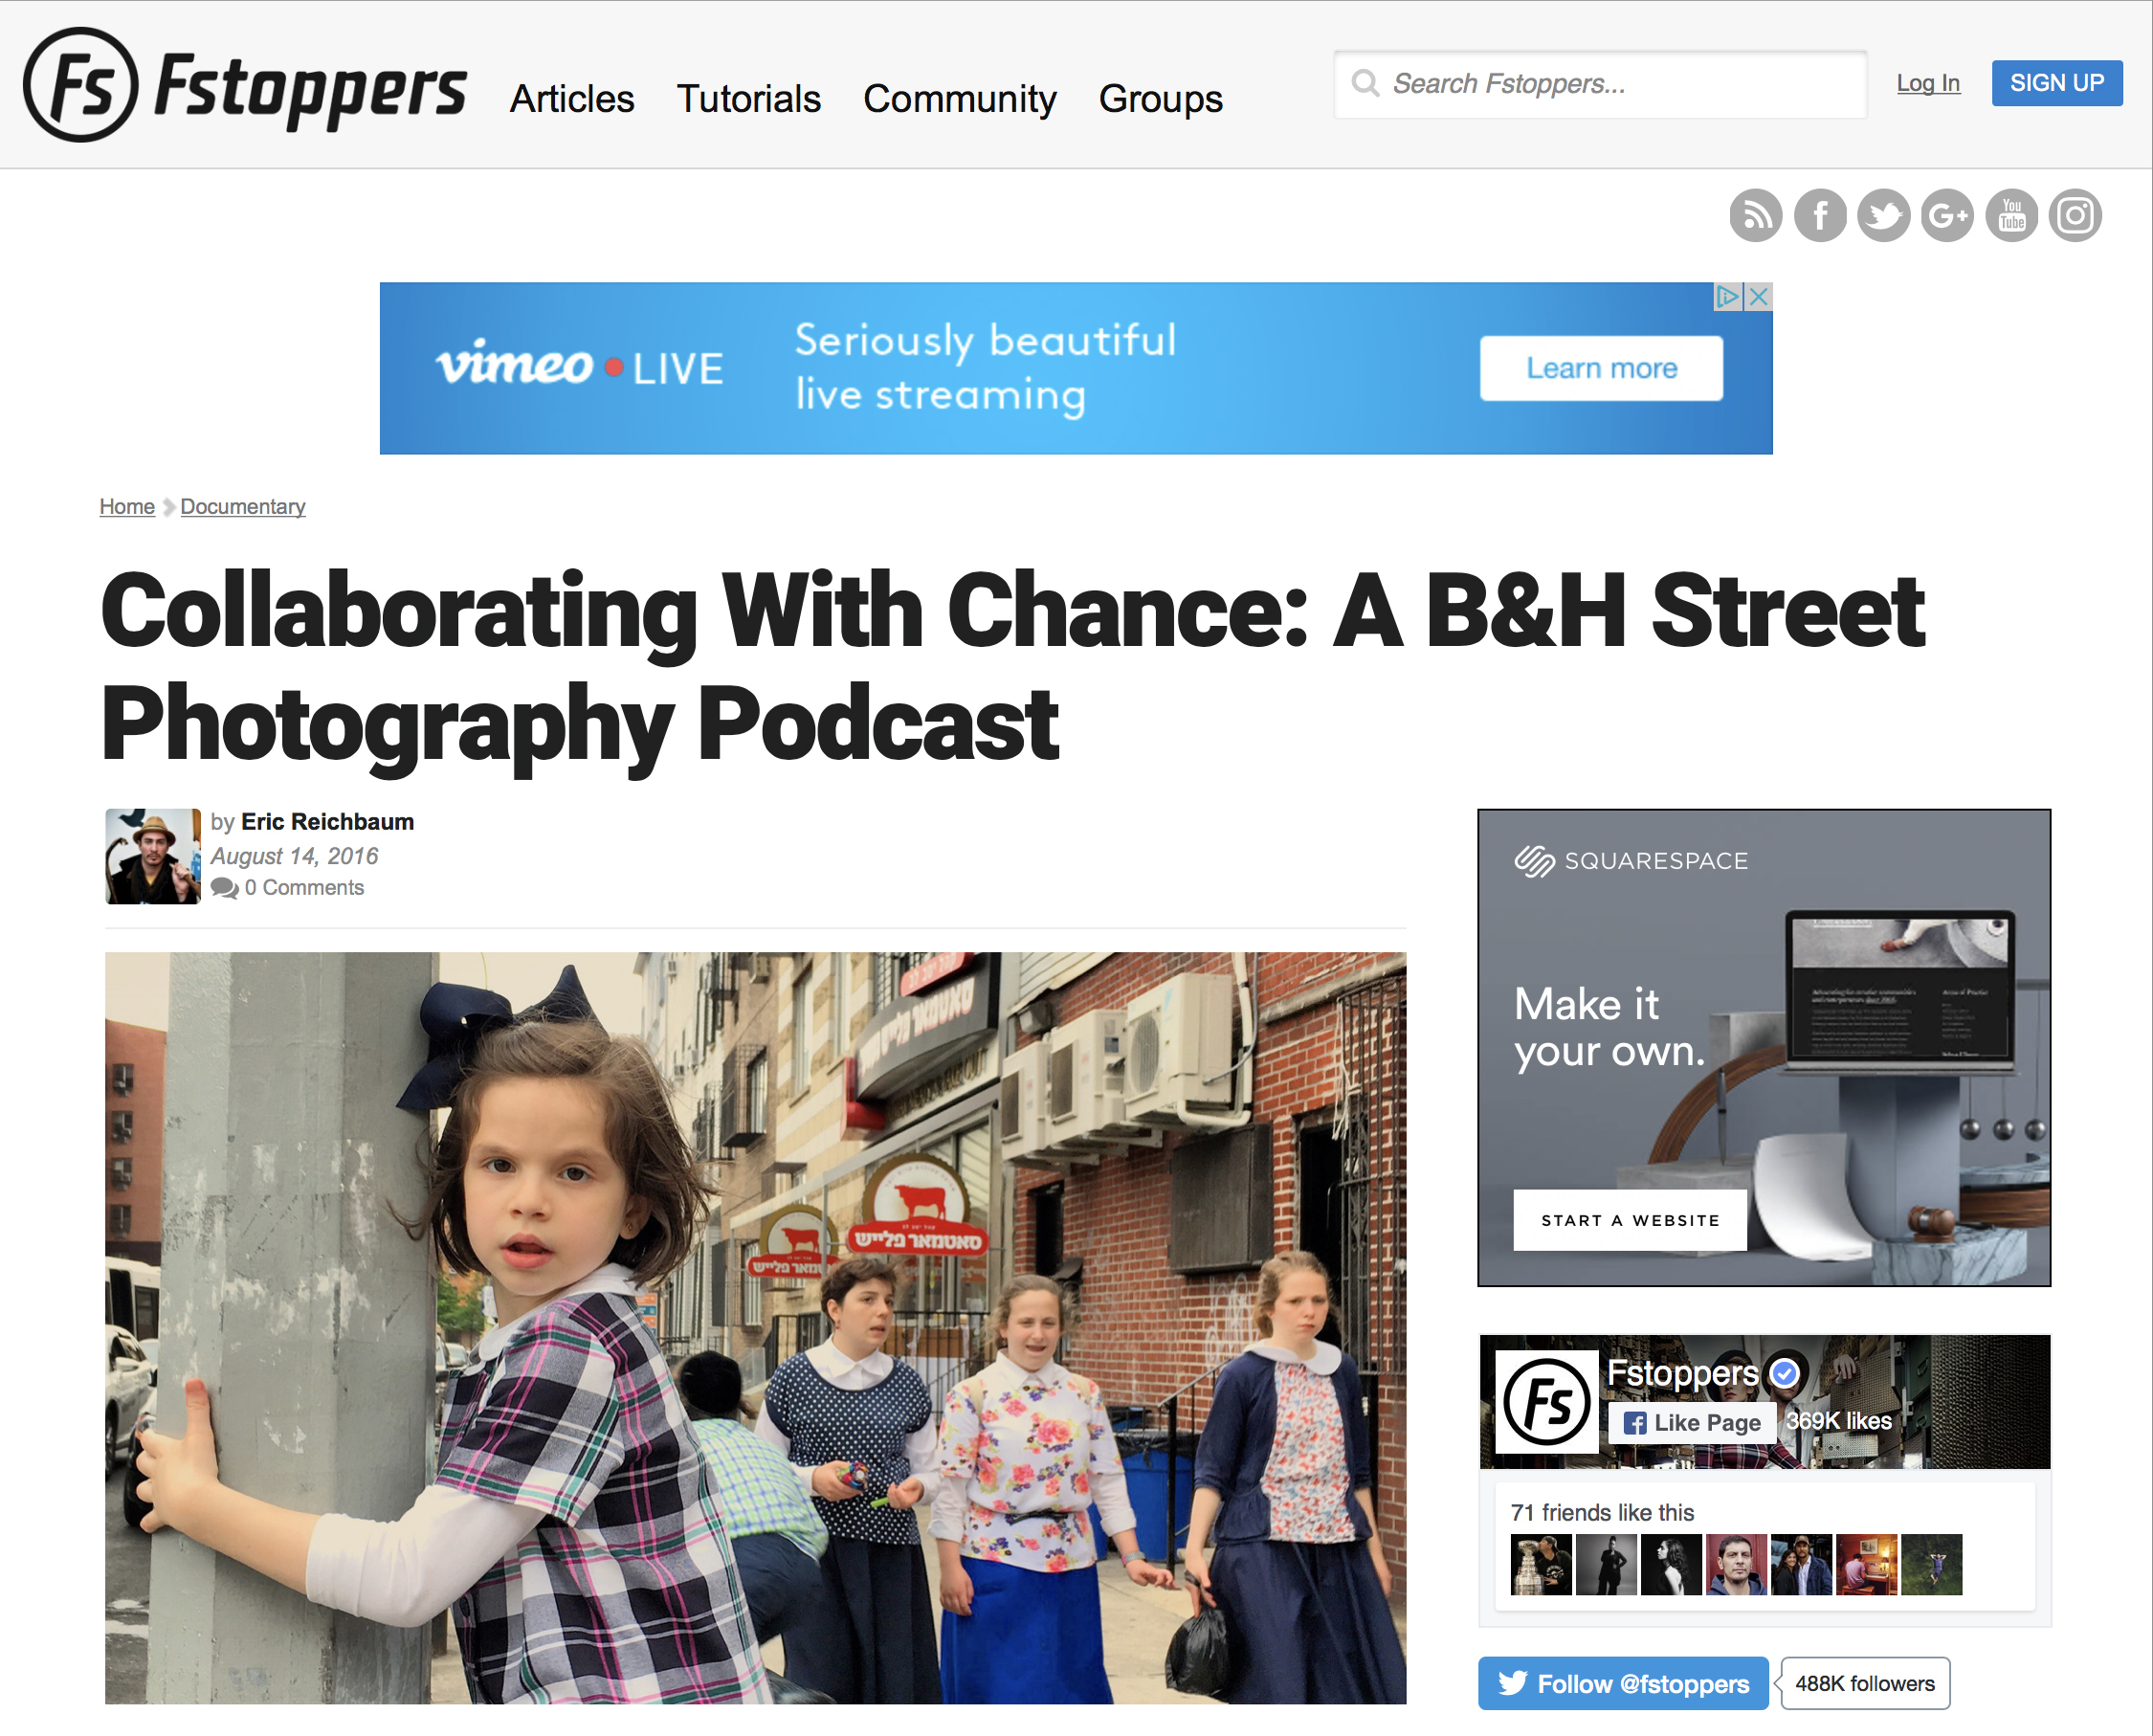 Fstoppers,Review of B&H Photography Podcast - AUGUST 14, 2016 Fstoppers is an online community aimed at educating and inspiring photographers, videographers, and creative professionals. Started in 2010 by founders Patrick Hall and Lee Morris, Fstoppers has grown into one of the top resources for photography lighting, gear reviews, business tips, behind the scenes, and industry news.